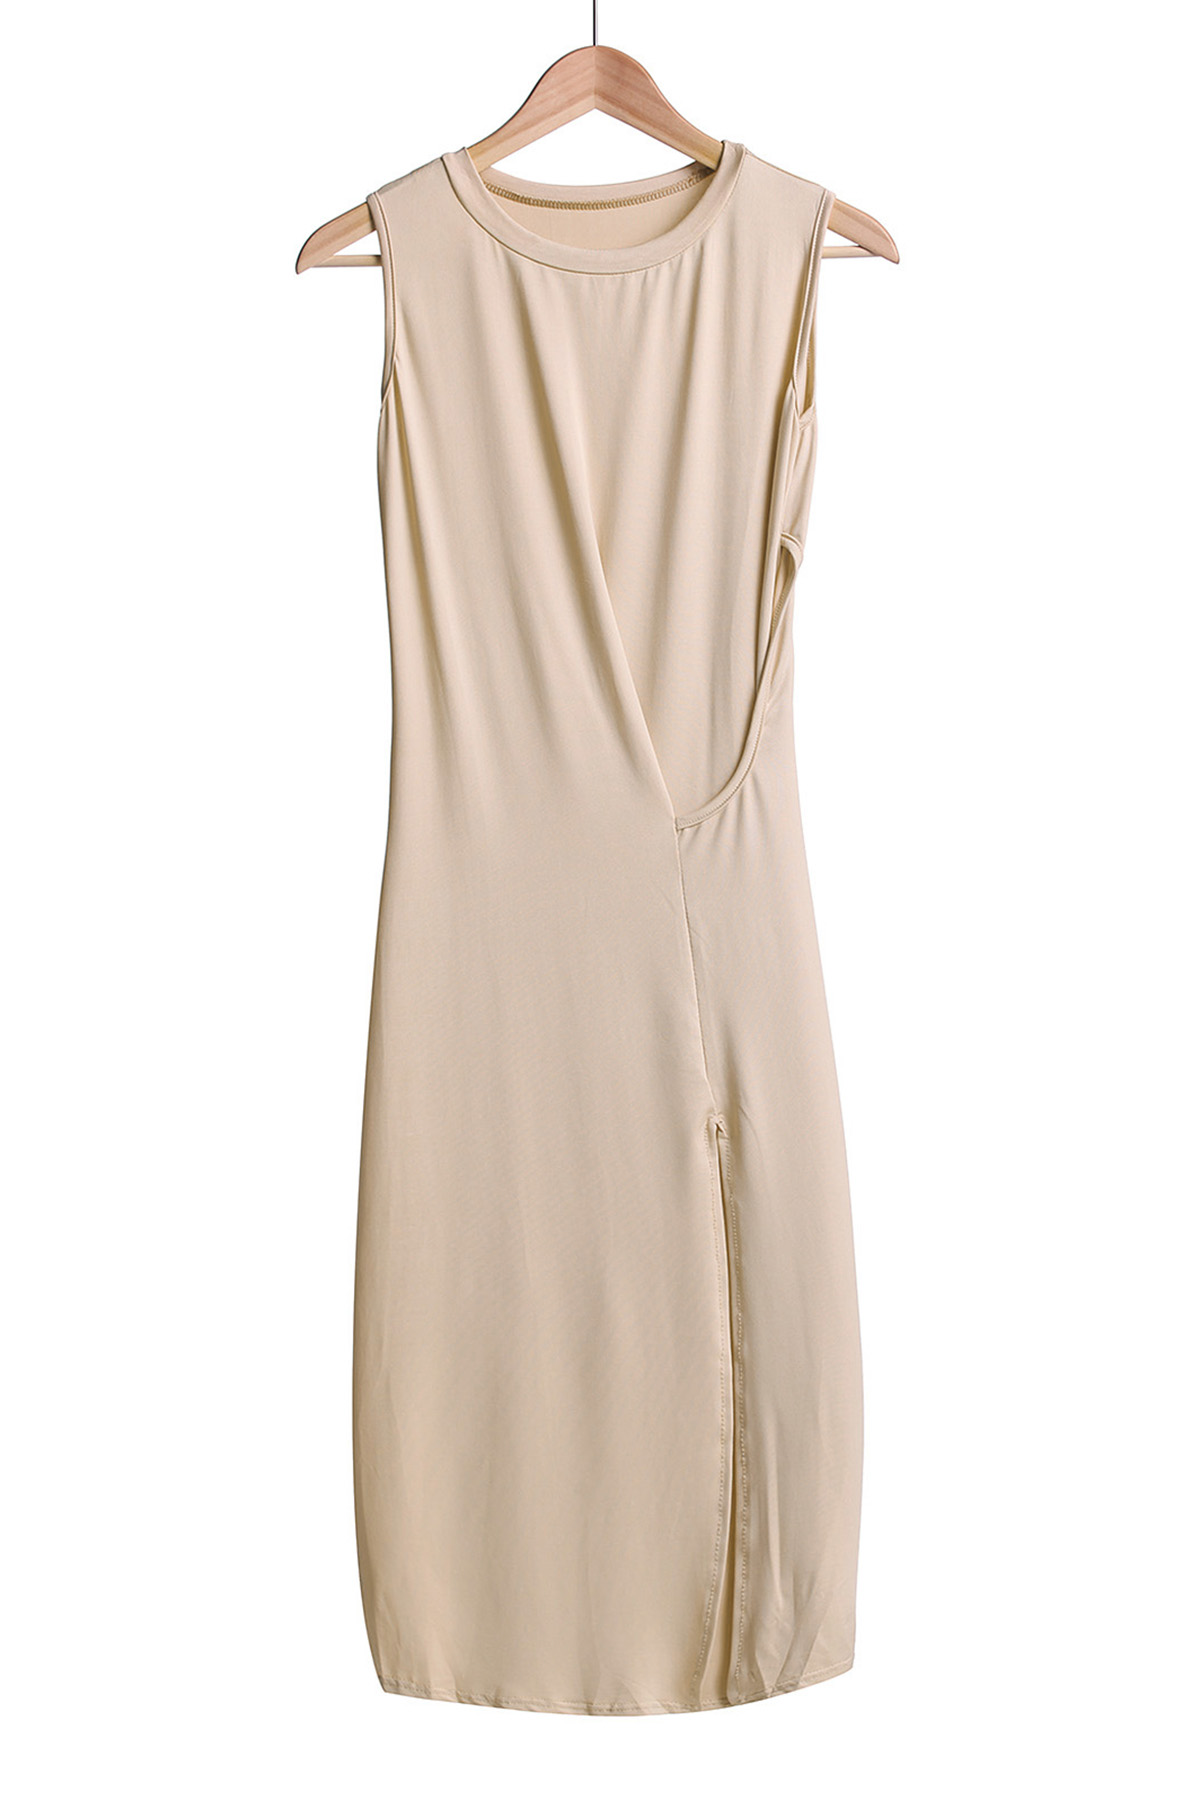 Solid Color High Slit Cut Out Maxi Dress - OFF WHITE S